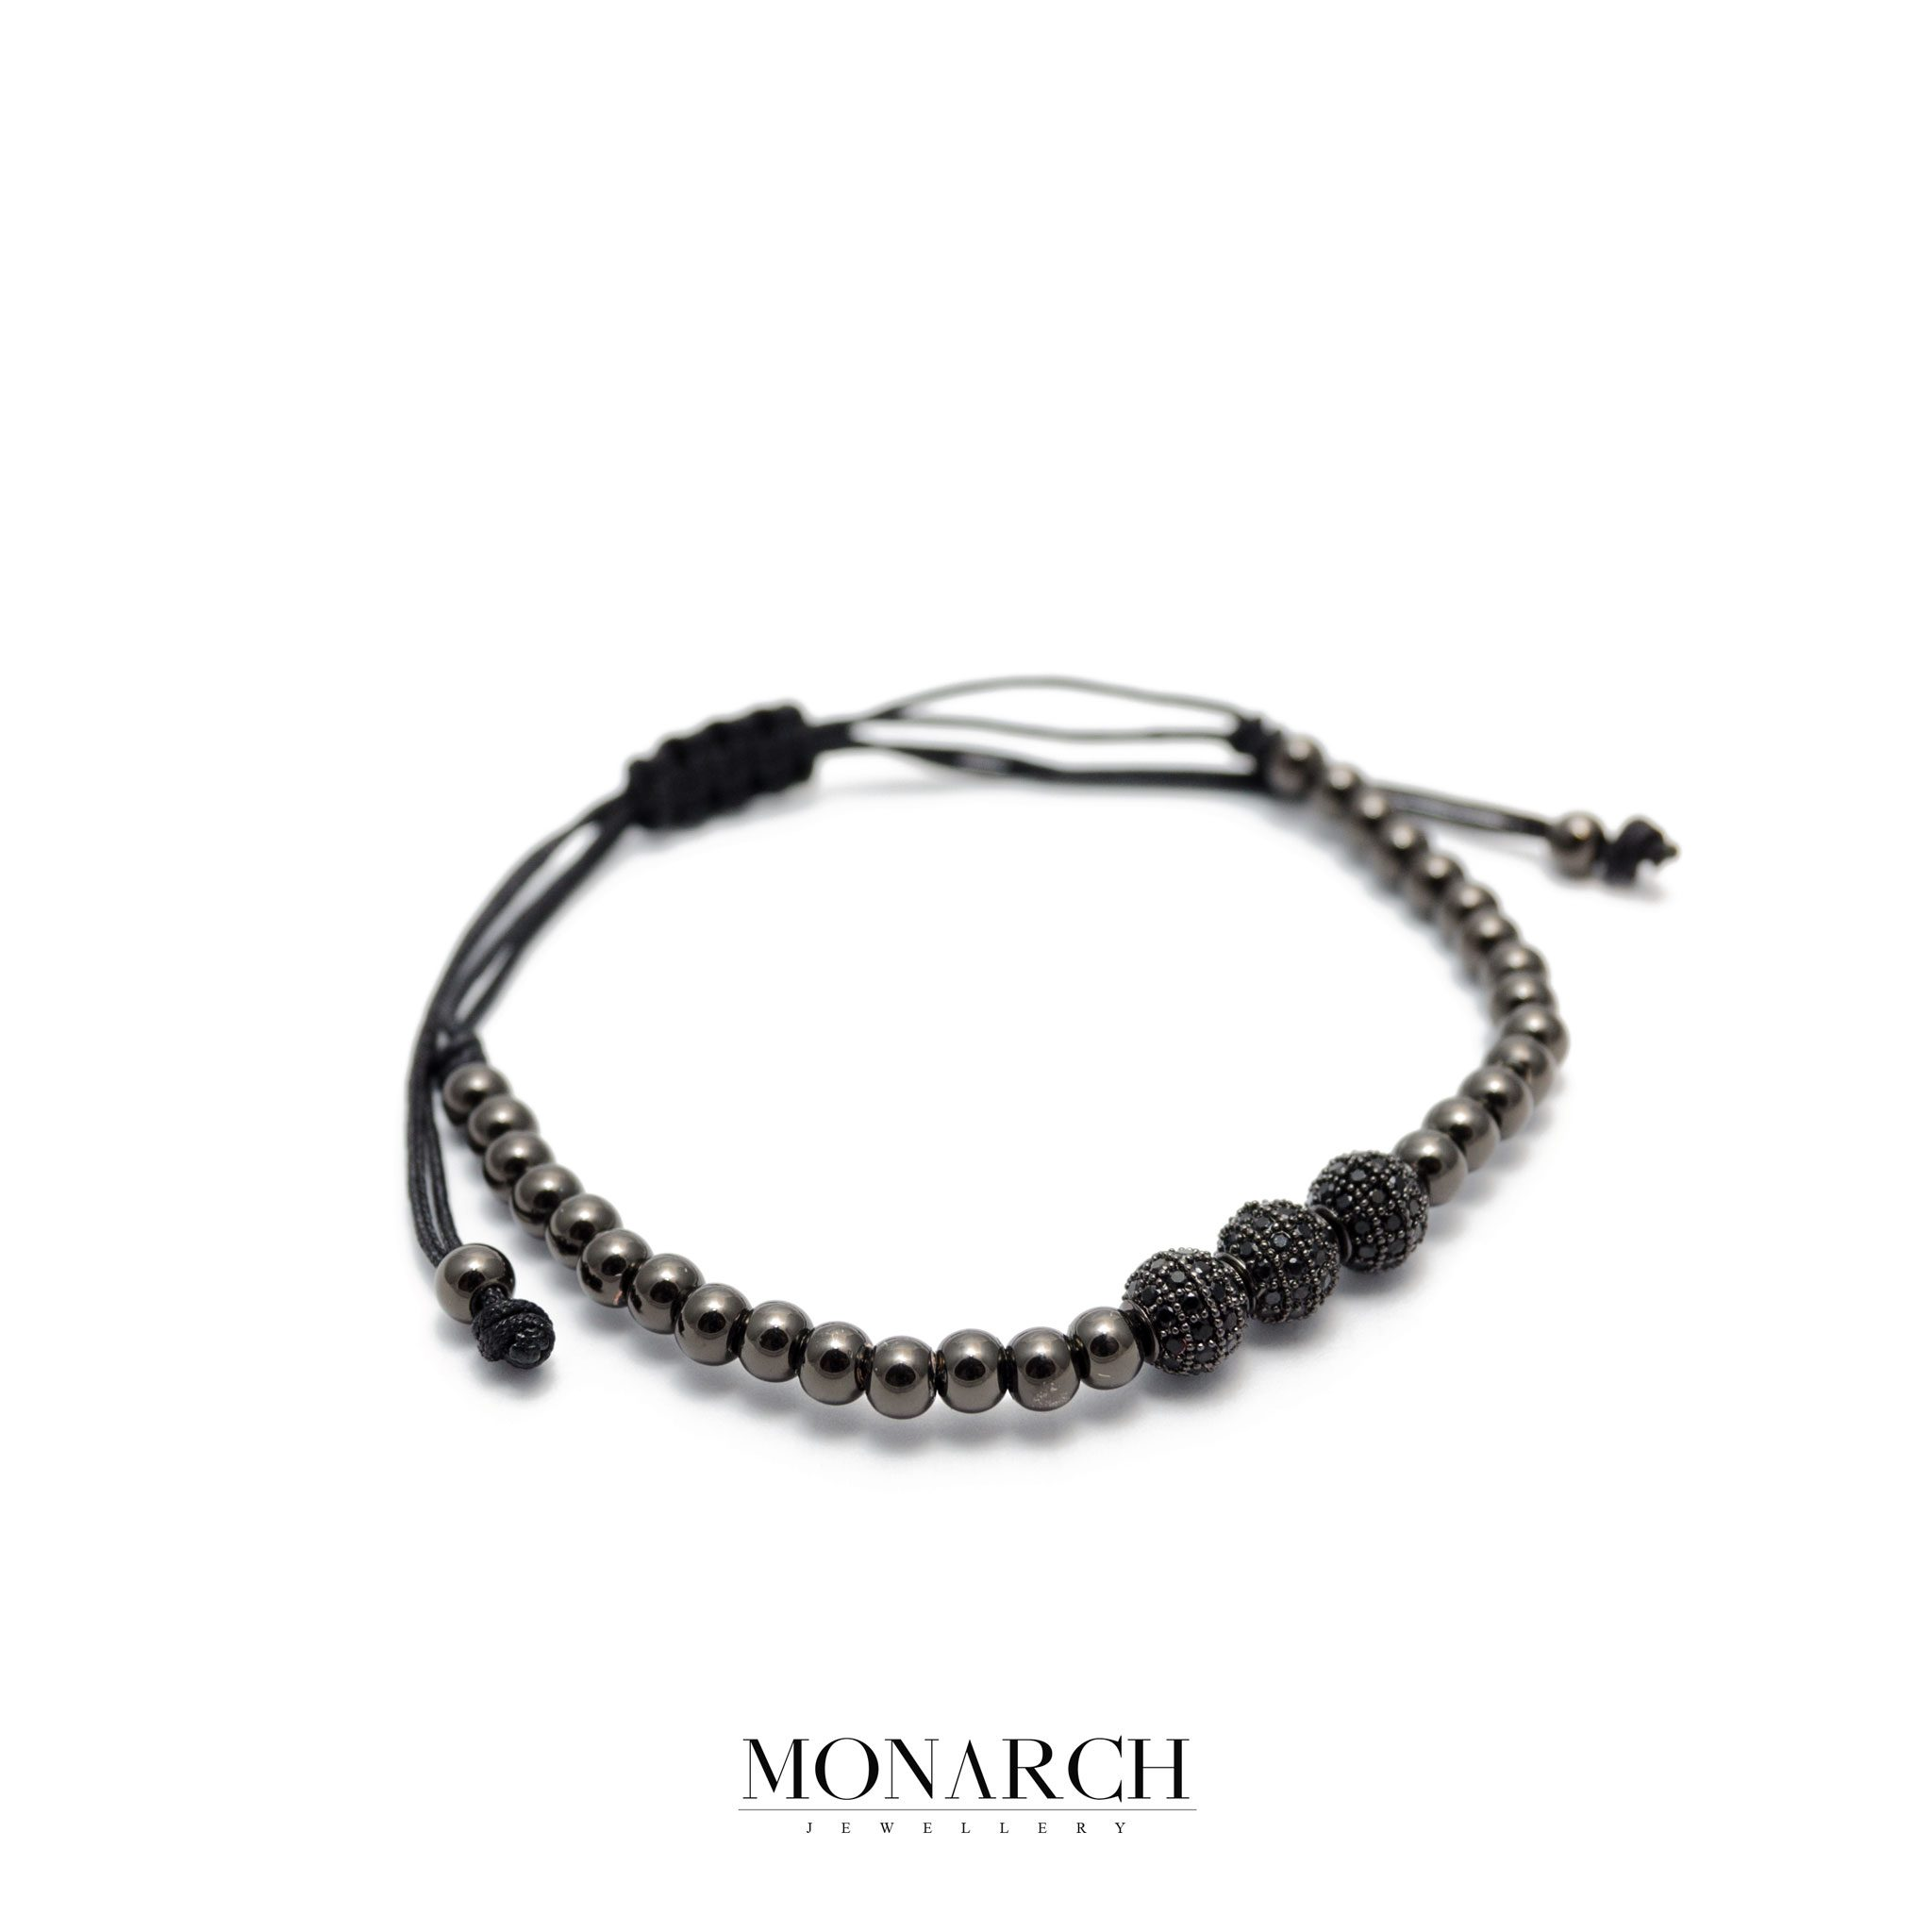 Monarch Jewellery Black Zircon Trio Bead Luxury Macrame Bracelet